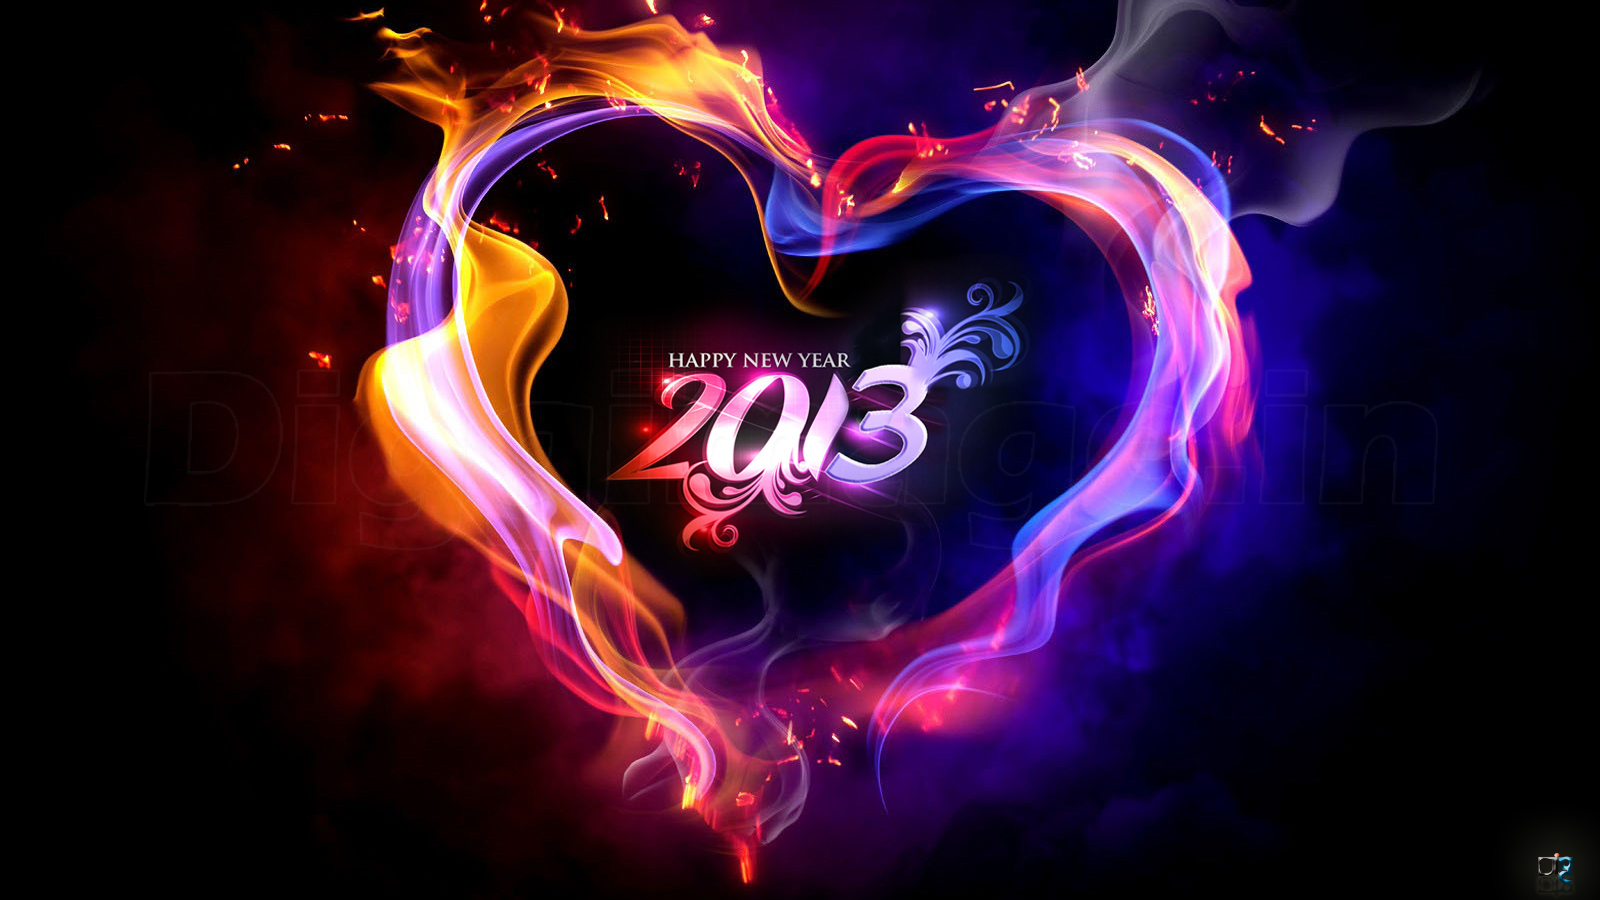 multicolored love fire 2013 happy new year scraps images